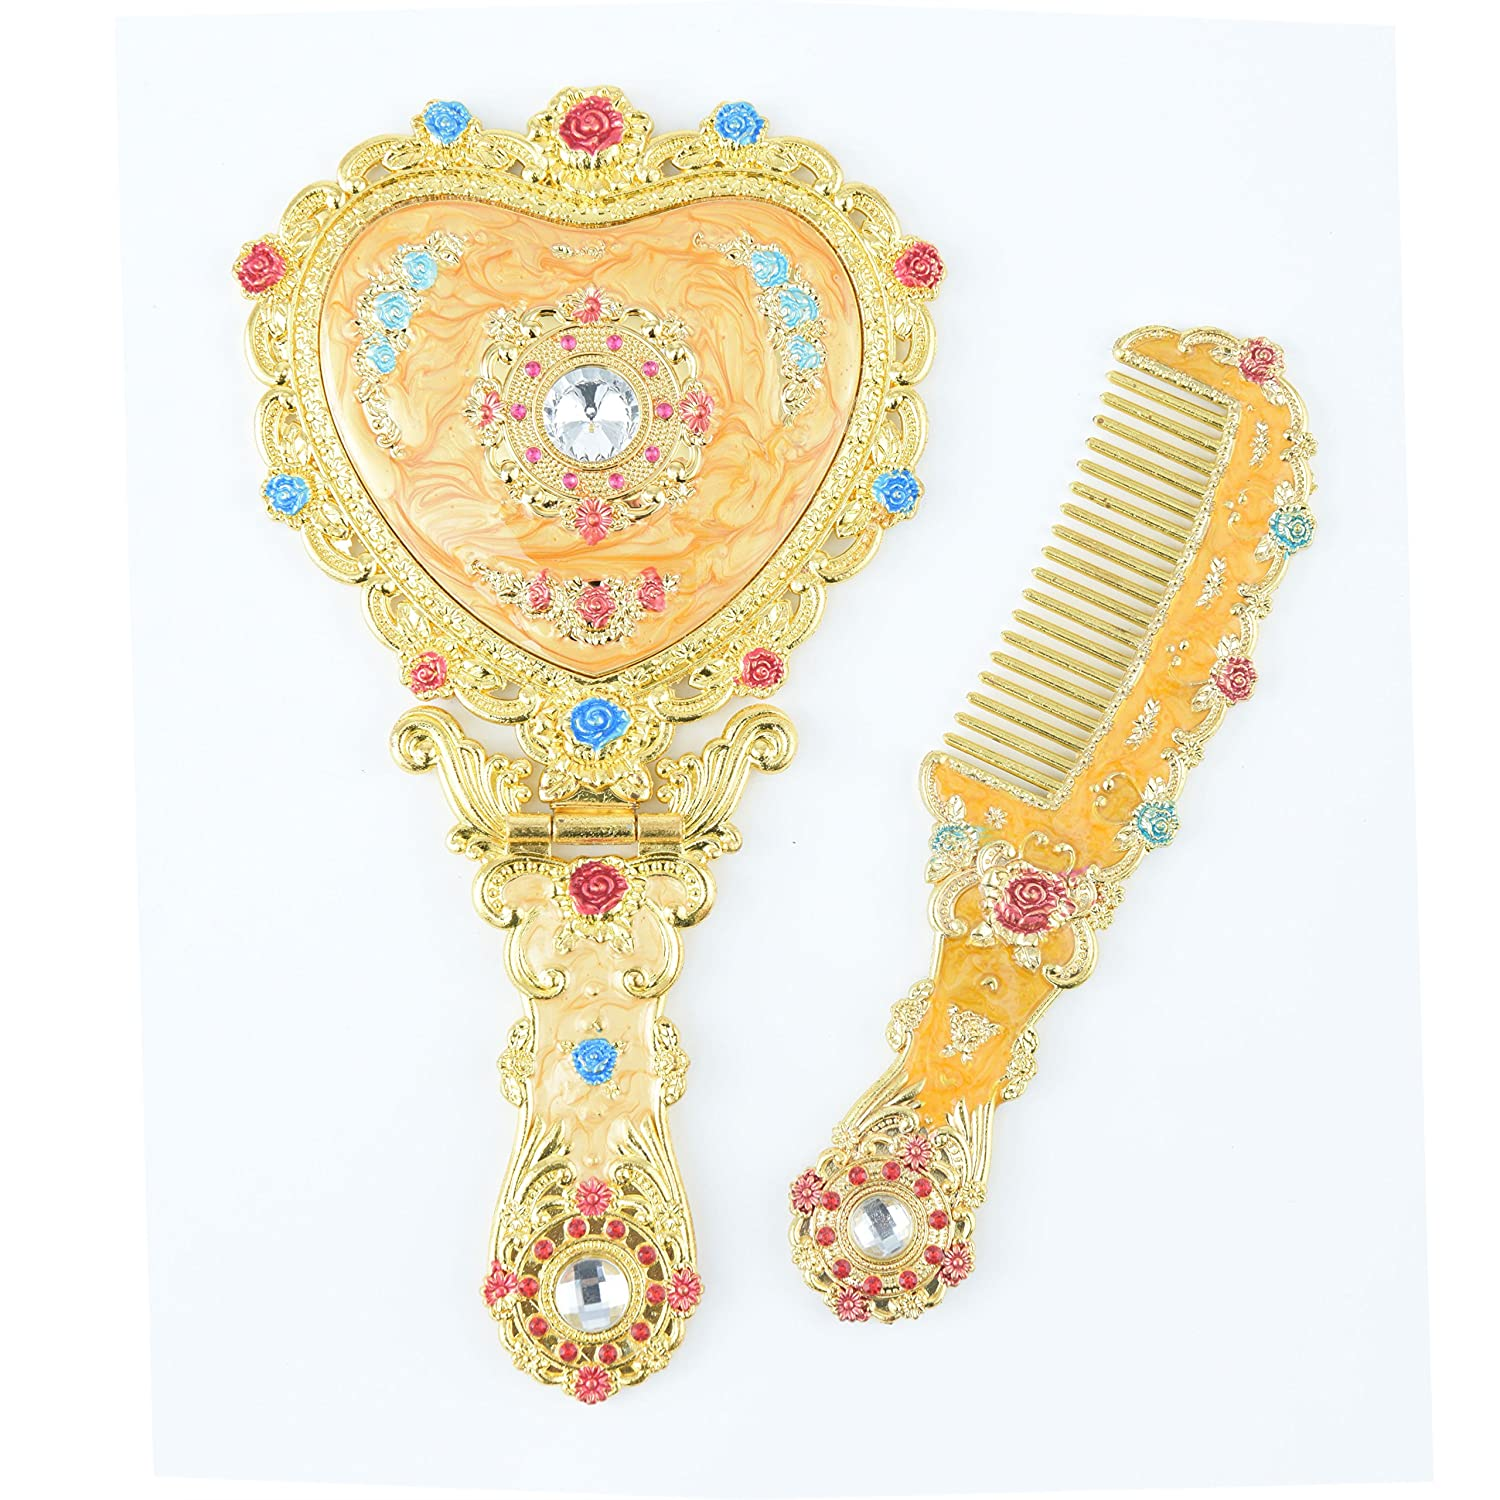 Moiom Vintage Princess Mirror, Iridescent Rhinestones Crystal Metal Folding Handheld Cosmetic Mirror Portable Travel Dressing Table Makeup Mirror, Golden with Yellow Painting